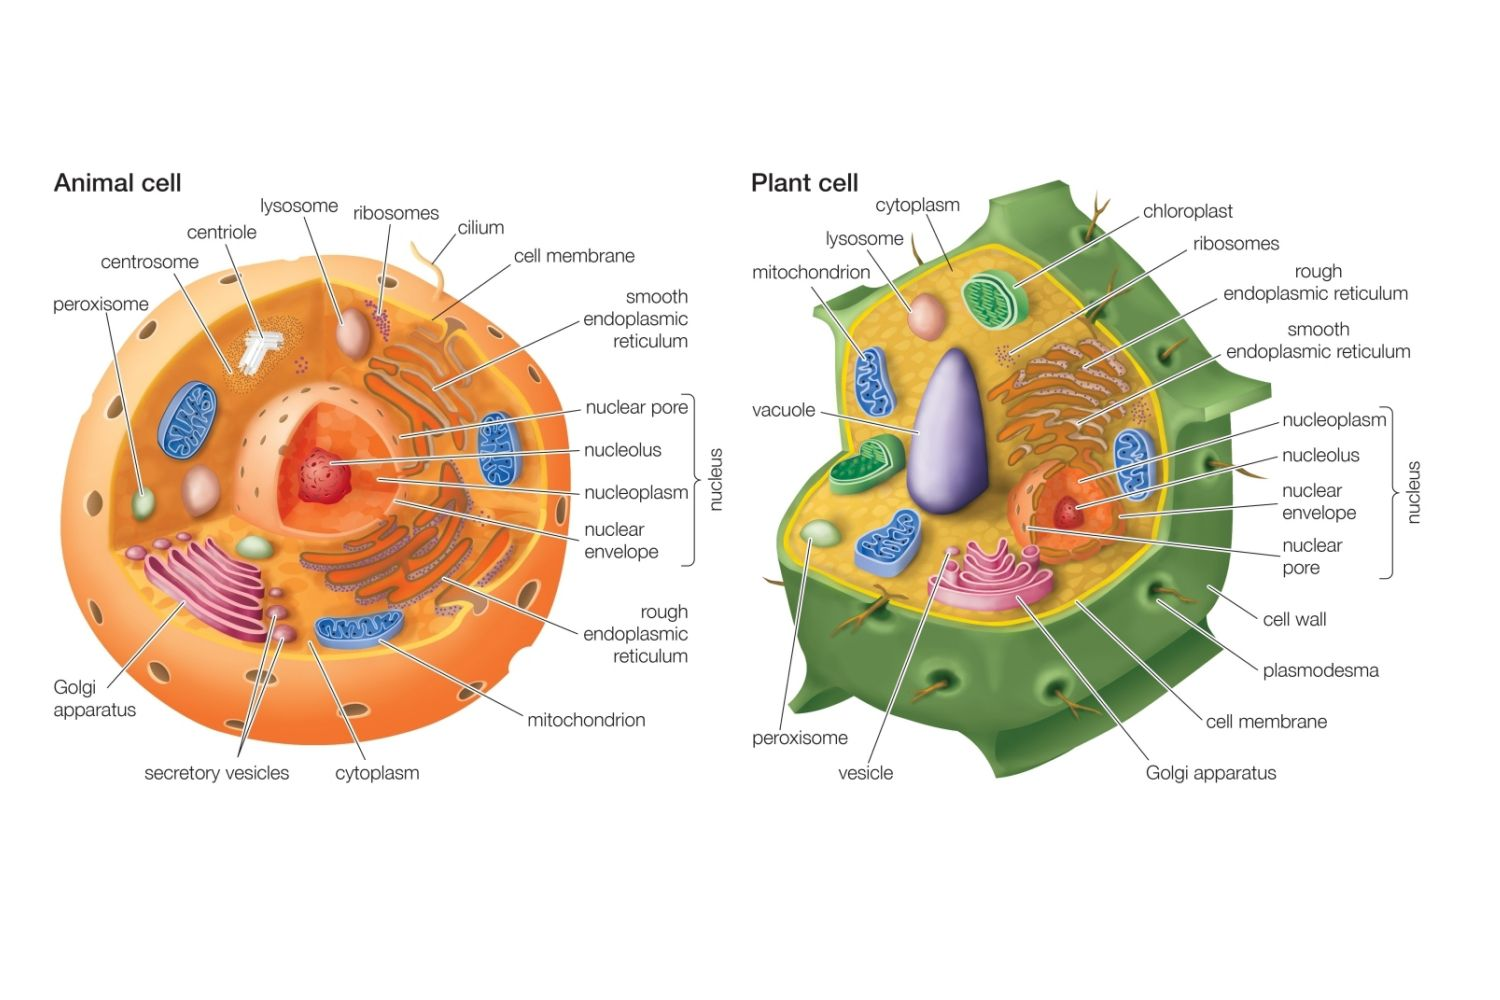 What does a plant and animal cell have in common? | Socratic